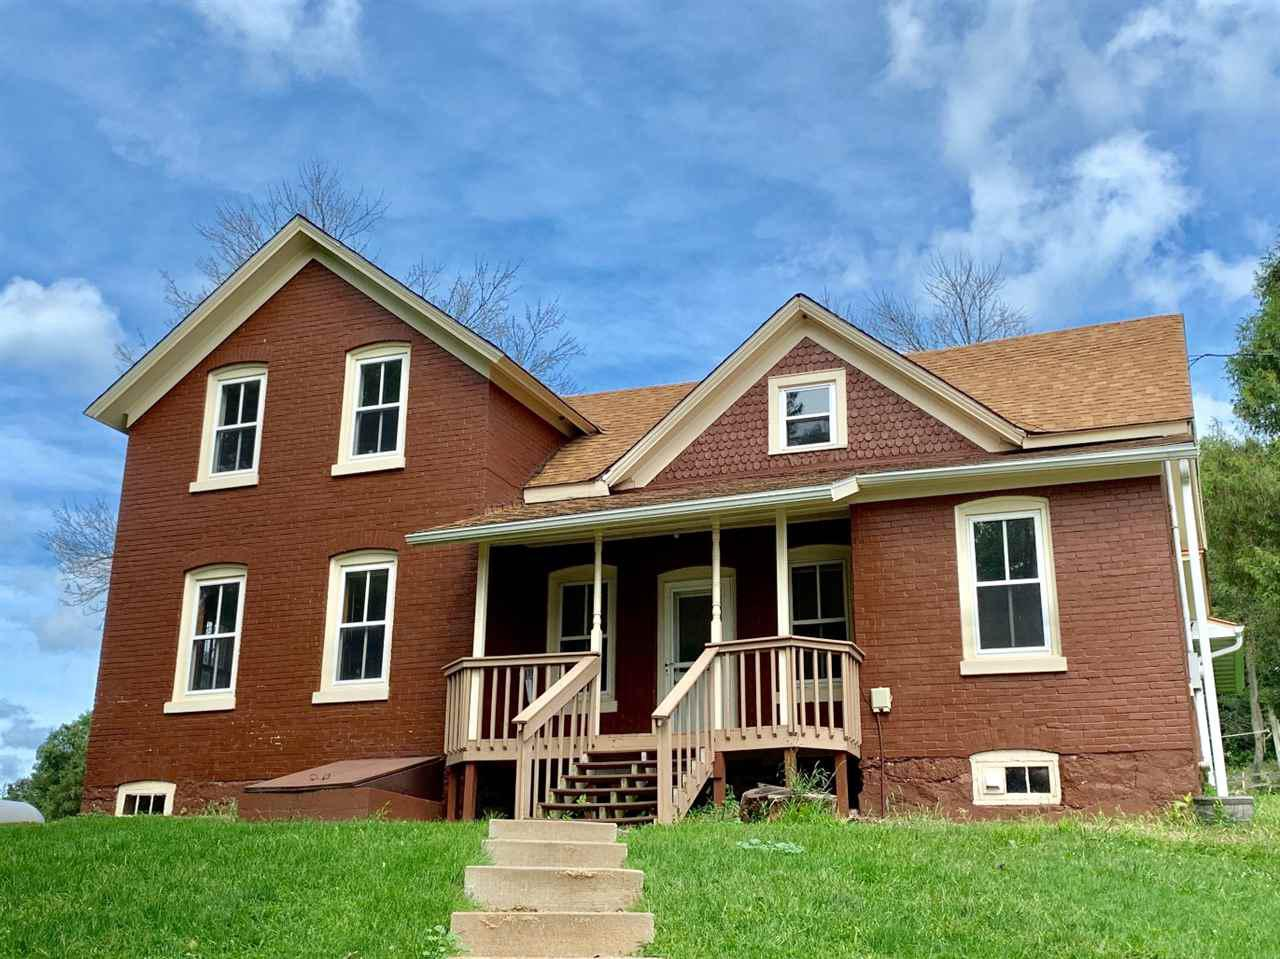 Be the King or Queen of the HILL!! This brick home was built strong on the Eastern hill/bluff of Elroy.  This home faces the Eastern morning sun and is just West of the Elroy Fair grounds area.  3-4 bedrooms this home has a lot of potential and has updated electrical and a furnace that's 8 years old. As of this past summer seller installed a new roof, carpet, and Air Conditioner! Additionally there is a 18x36 pole shed with 18 ft side walls and 36x24 detached garage. Wood stove in great room and the septic has recently been inspected. Perfect for horses or other farm animals! Call soon for your appointment to see this beautiful country home!